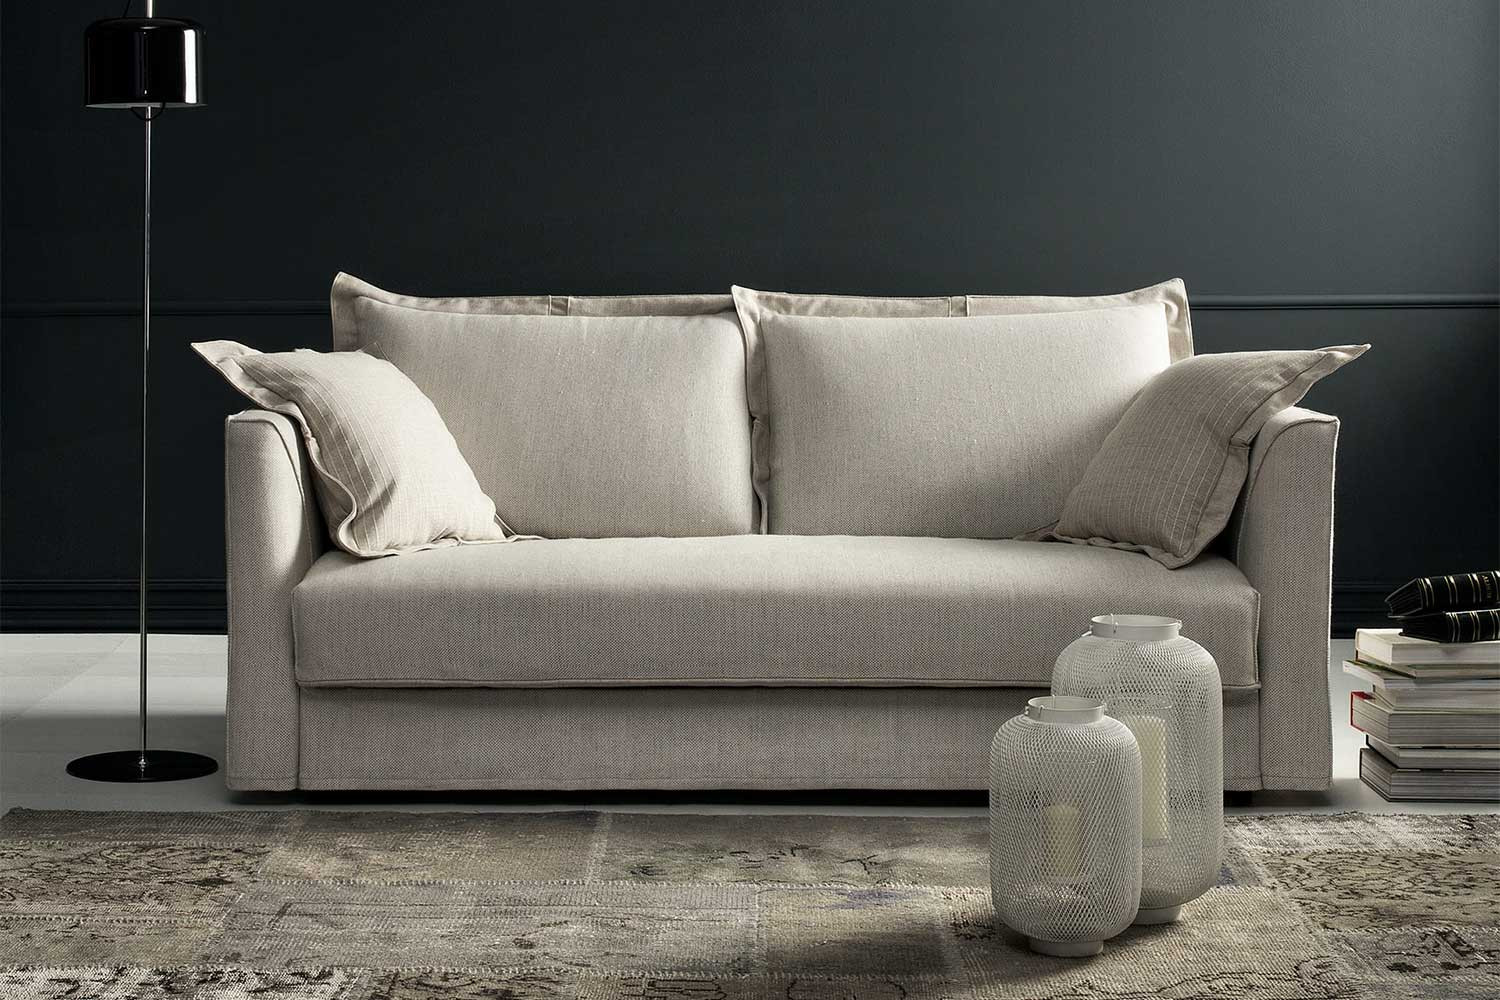 2-3 seater pillow back sofa bed, with loose ruffle-edge cushions and high slim arms